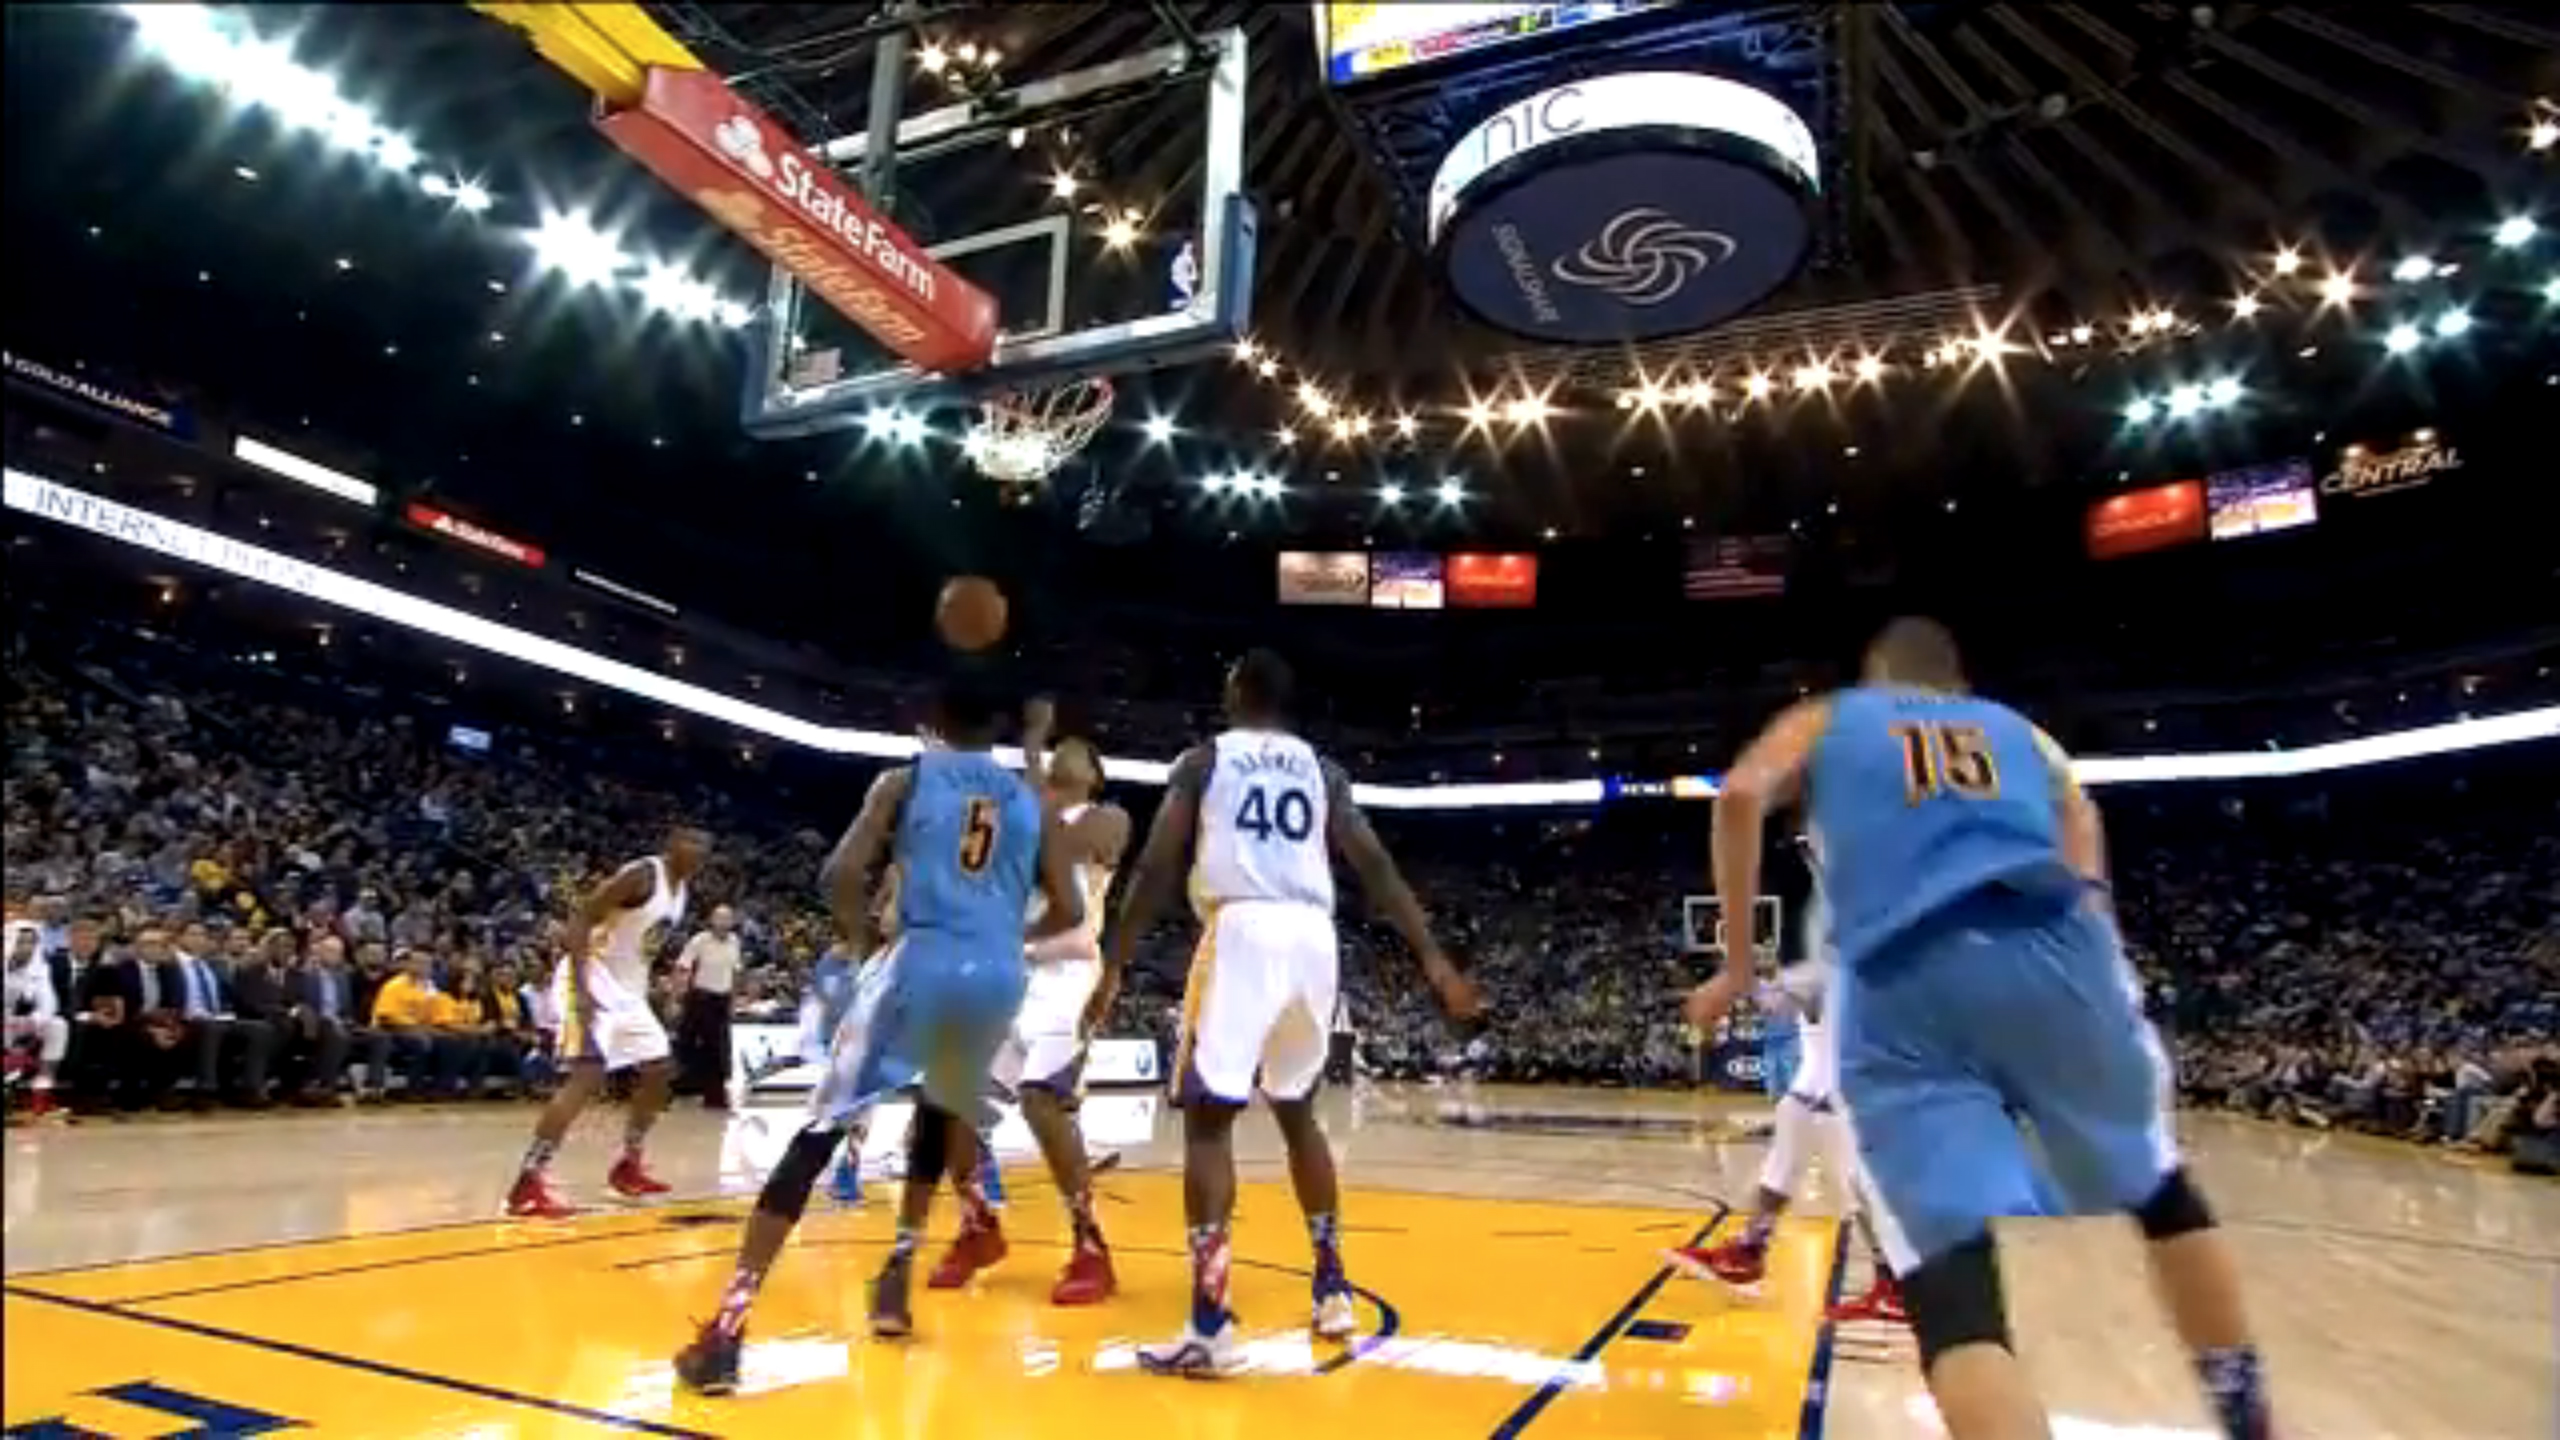 Denver-Nuggets-vs-Golden-State-Warriors-Recap-11-6-15.jpg